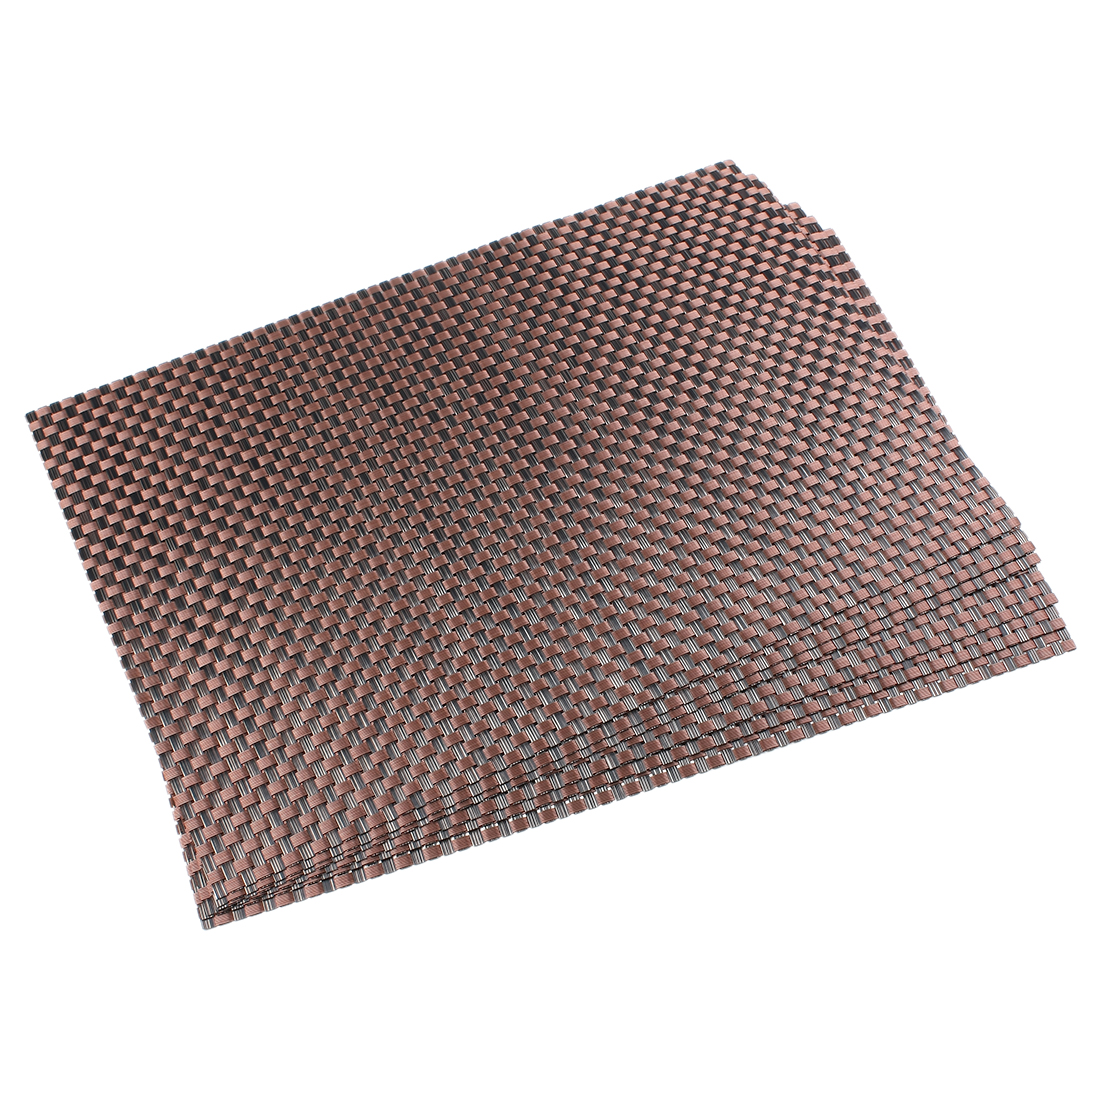 PVC Heat Resistant Table Cup Mat Placemat Coaster 6pcs Brown